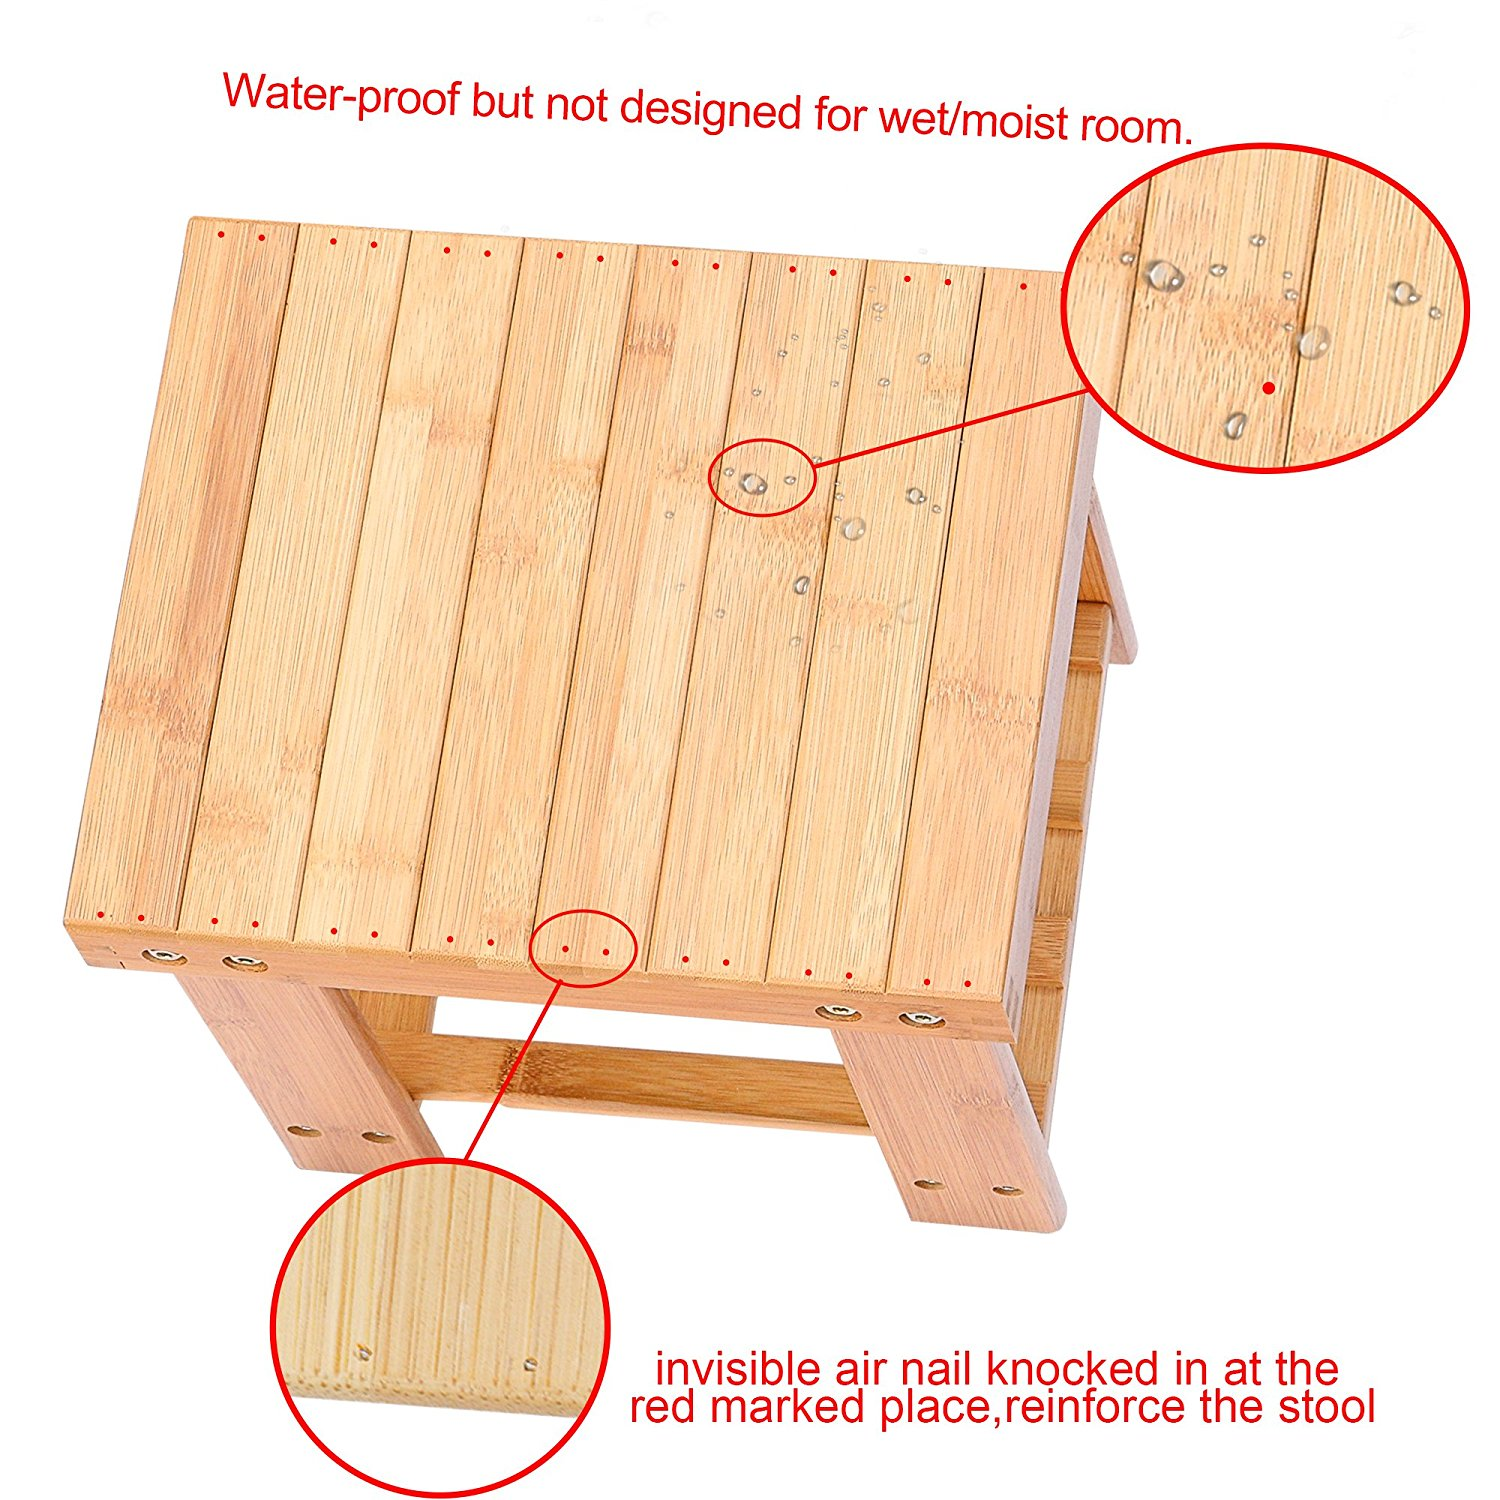 Admirable Details About Multfunctional Small Bamboo Step Stool Seat W Storage Shelf For Kids Foot Pads Beatyapartments Chair Design Images Beatyapartmentscom